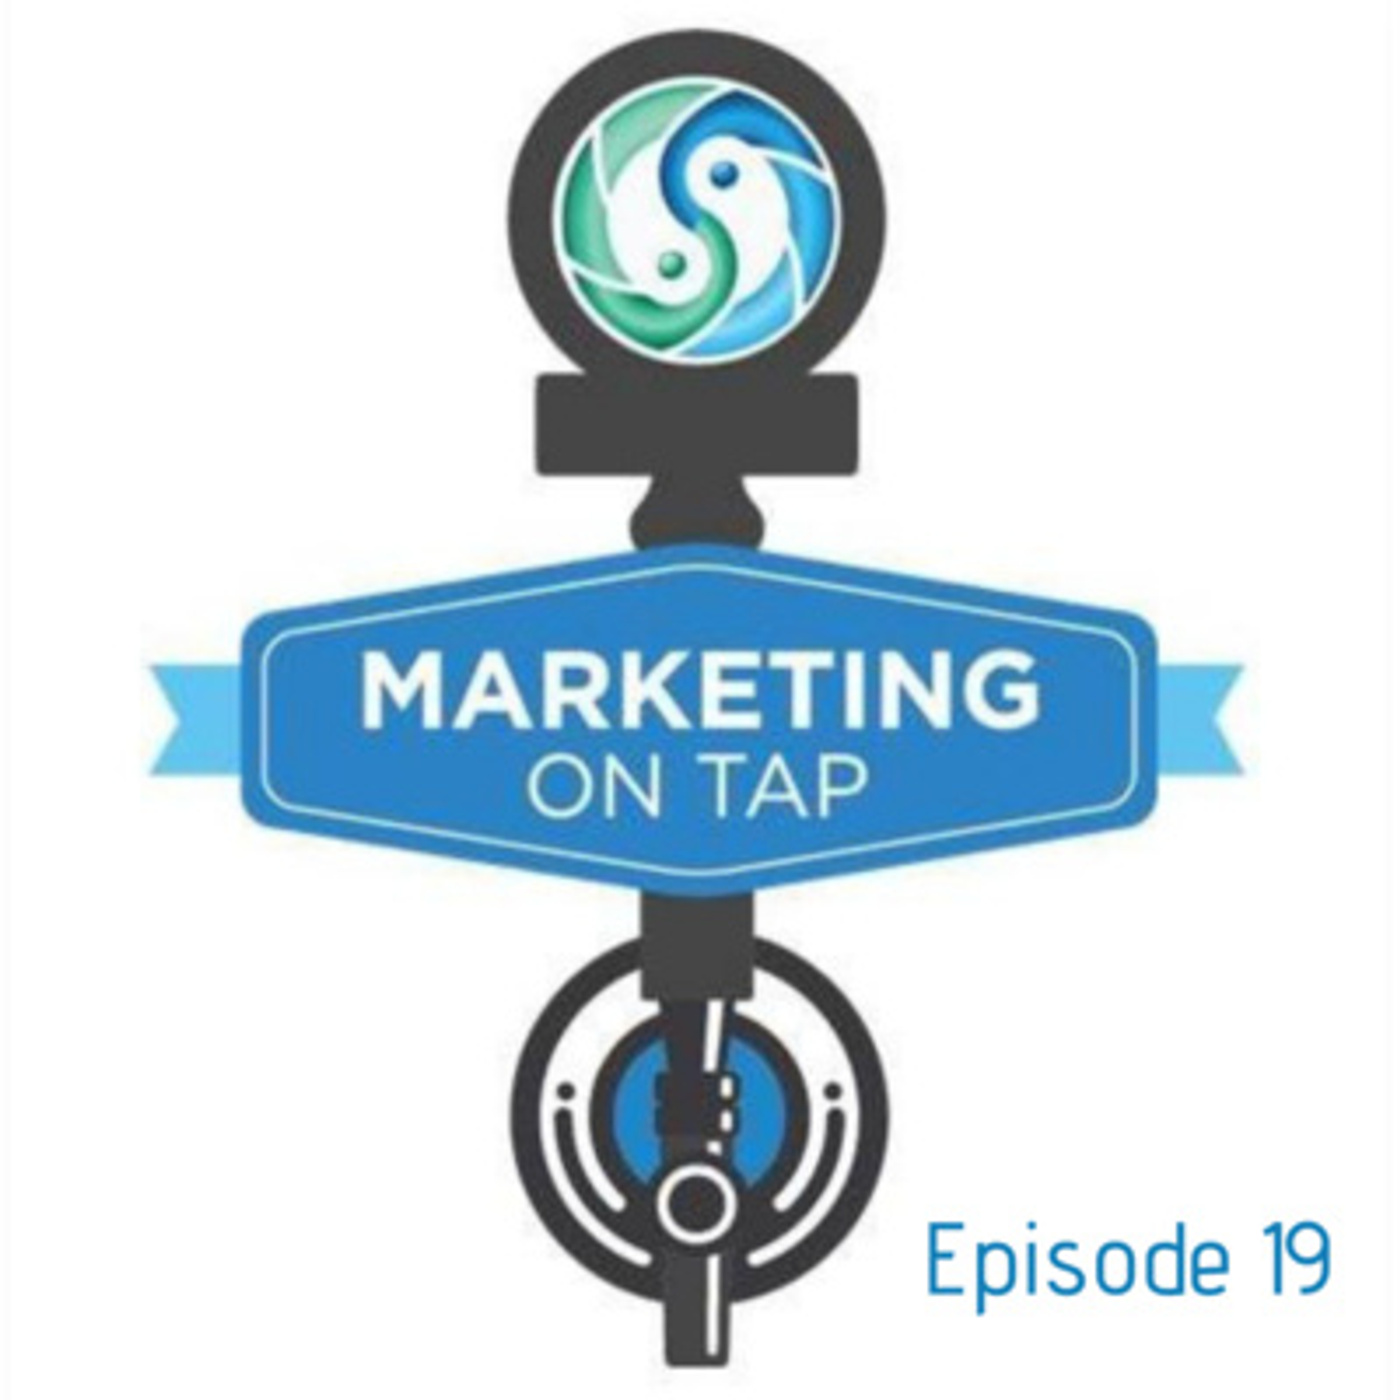 Episode 19: Social Influencers or Media Buying - Has Influence Marketing Lost Its Way?